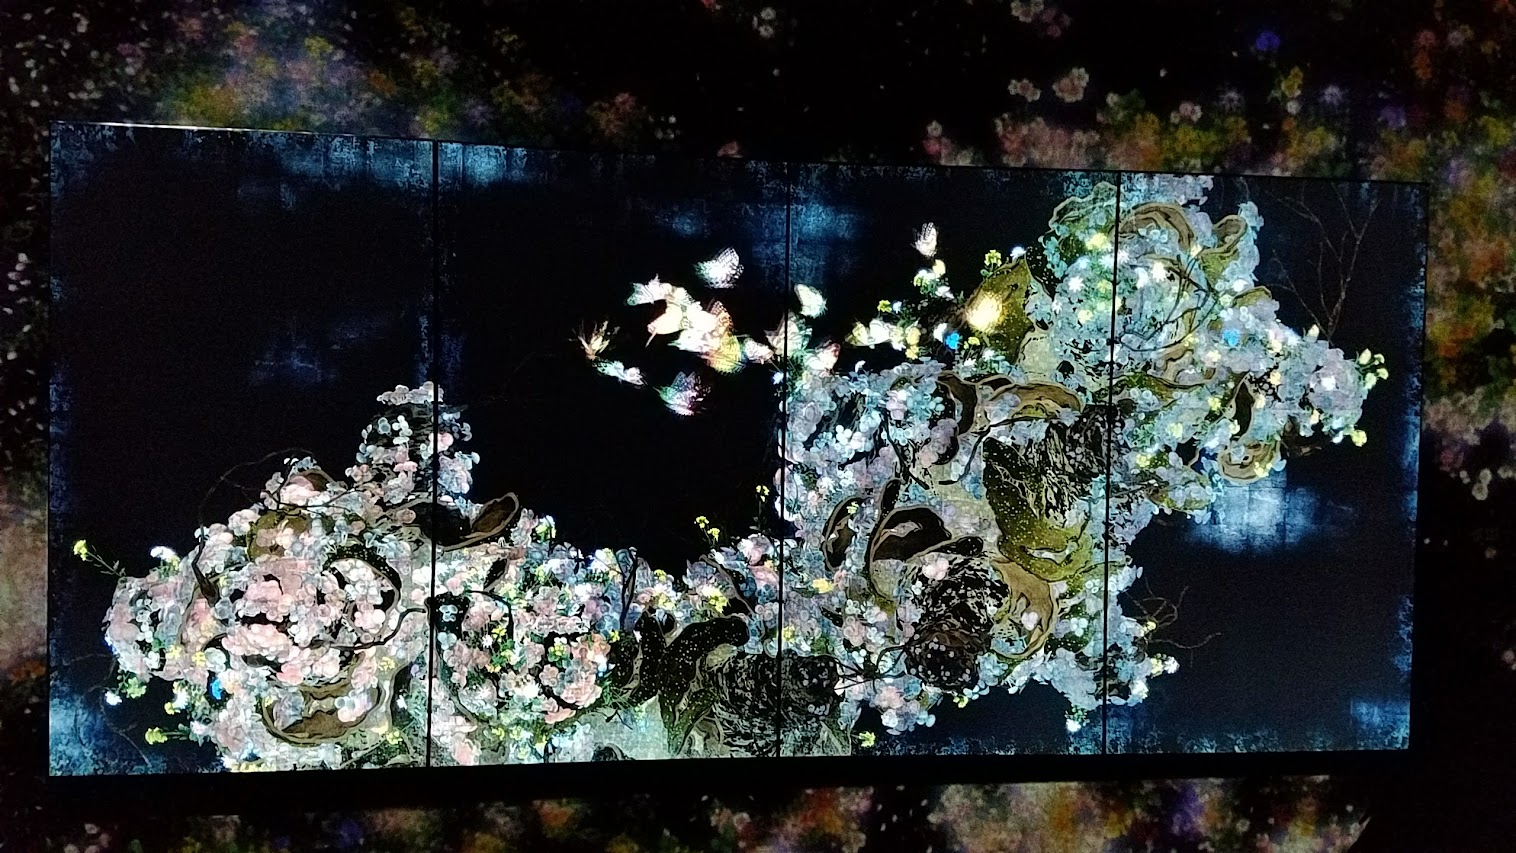 Flutter of Butterflies Beyond Borders as part of Pace Art + Technology exhibit Living Digital Spaces and Future Parks. This was a mode of the TV screen that would swap between Ever Blossoming Life II in turns. For this art piece, butterflies appear on the screen and fly seamlessly into the nearby installation (aka outside the TV screen and into the room walls). It challenges the boundaries between the works. The flight pattern of the butterflies in Flutter of Butterflies Beyond Borders is influenced by the state of the other works, as well as the behavior of the viewers. The butterflies gather in places where flowers bloom in the other works; and if a viewers touches a butterfly, it loses its life.